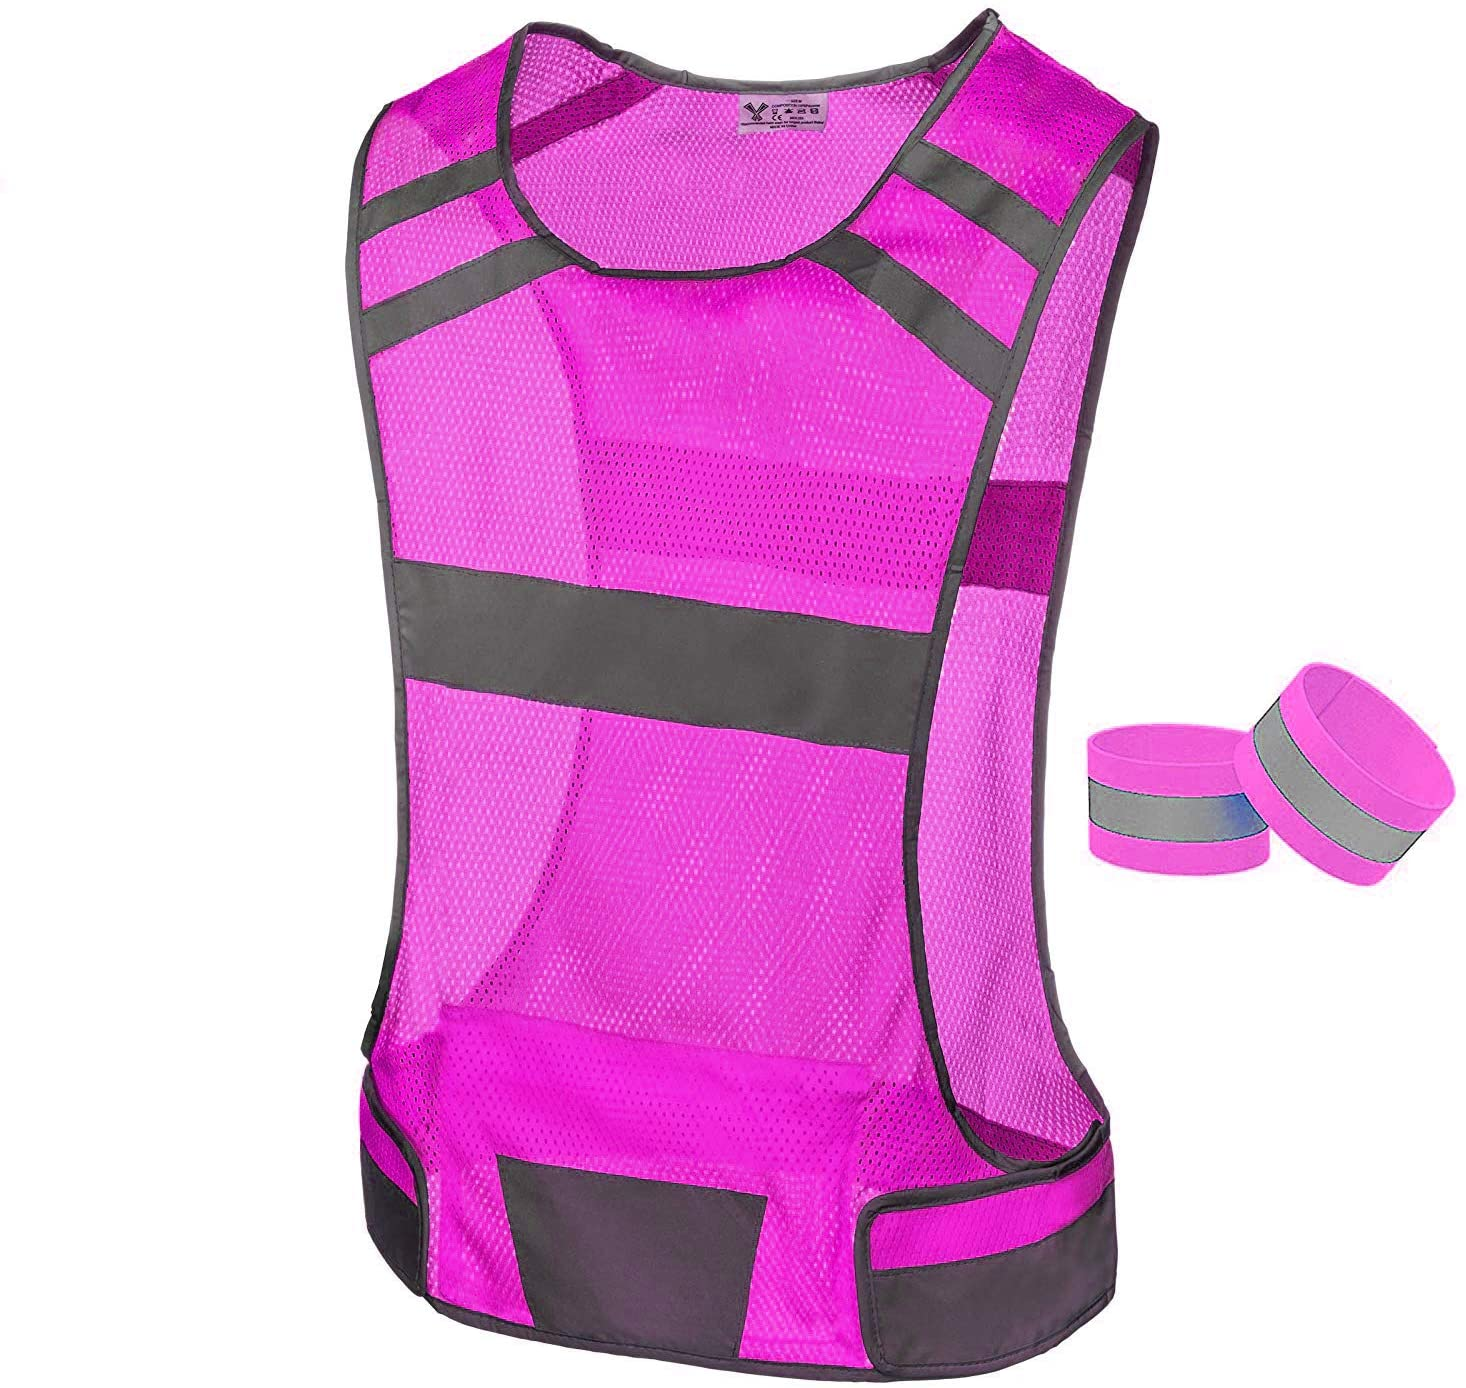 247 Viz Reflective Running Charlotte Mall Vest Safety High - NEW before selling ☆ Visibility Ve Gear